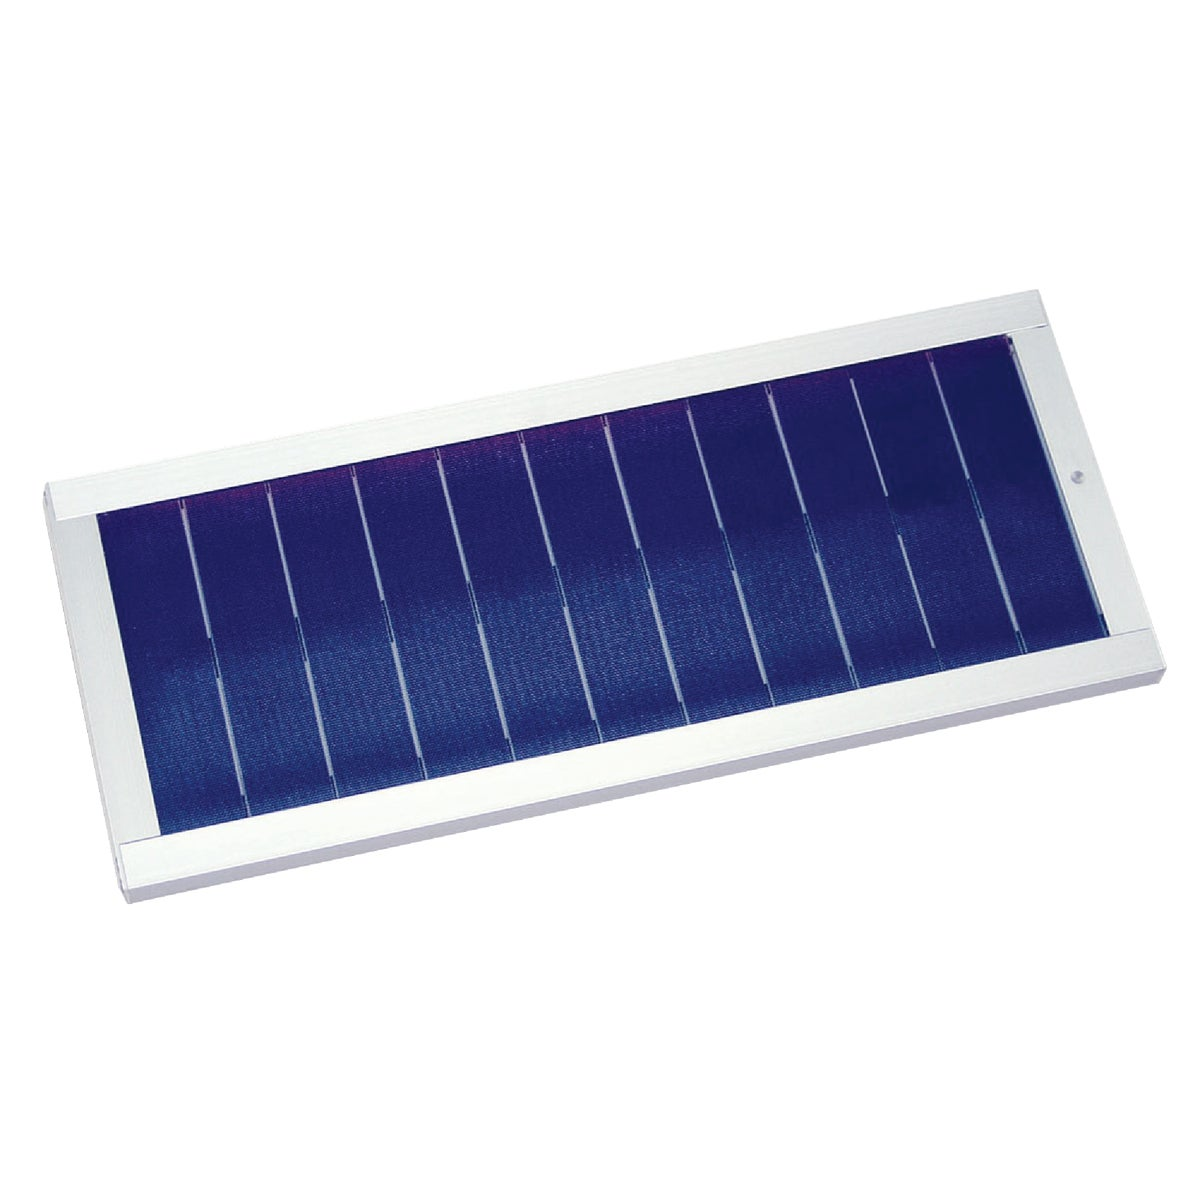 5 WATT SOLAR PANEL - FM121 by Gto Inc